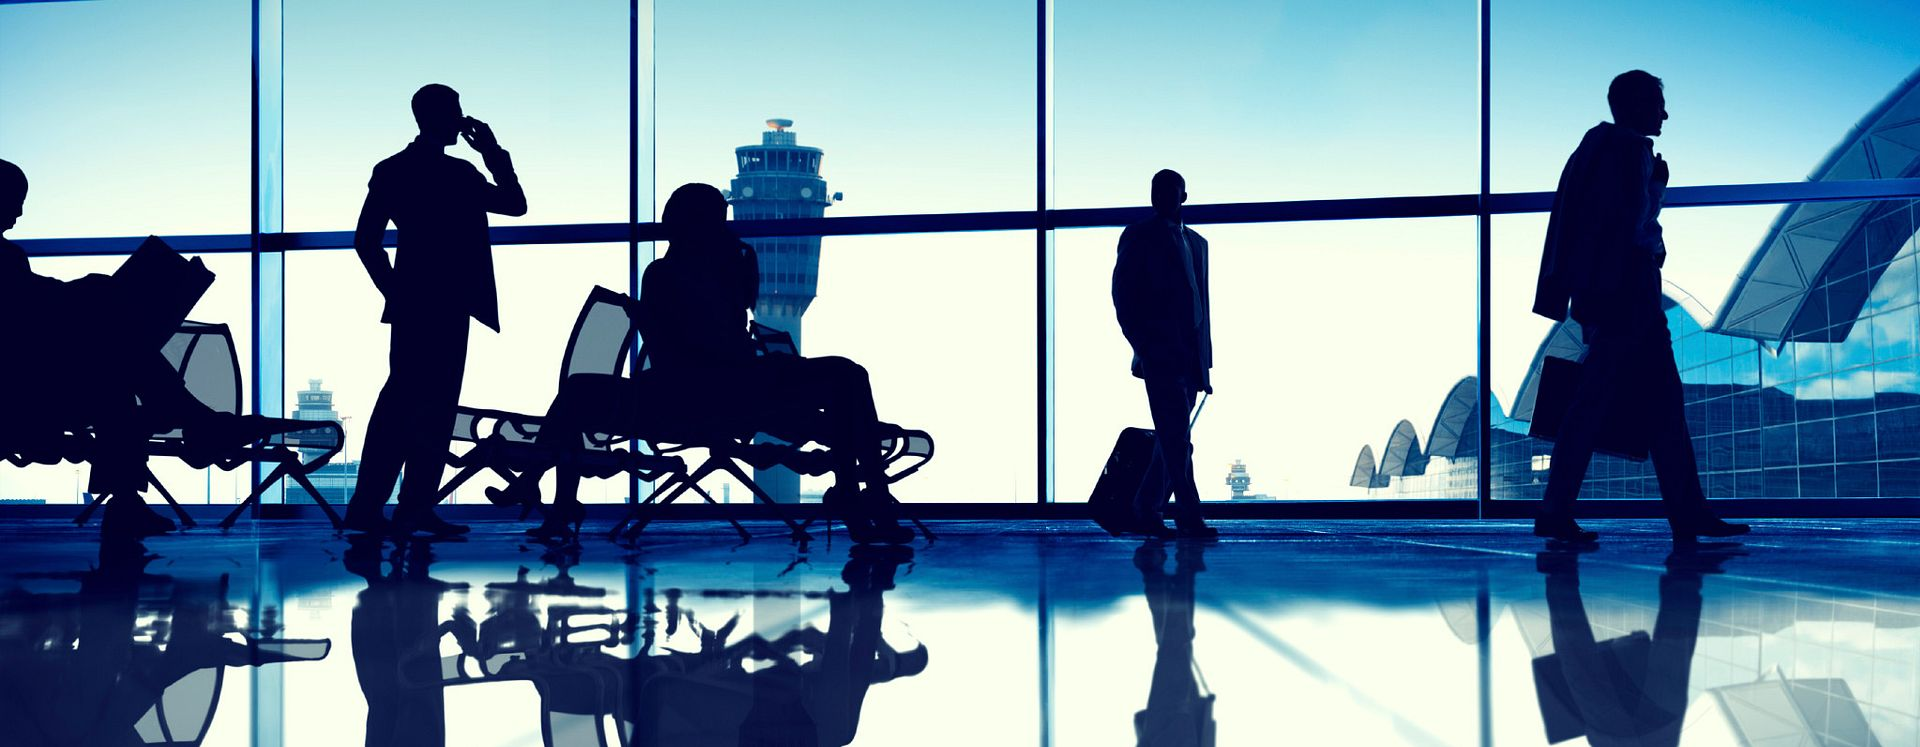 Silhouettes of peolple in an airport